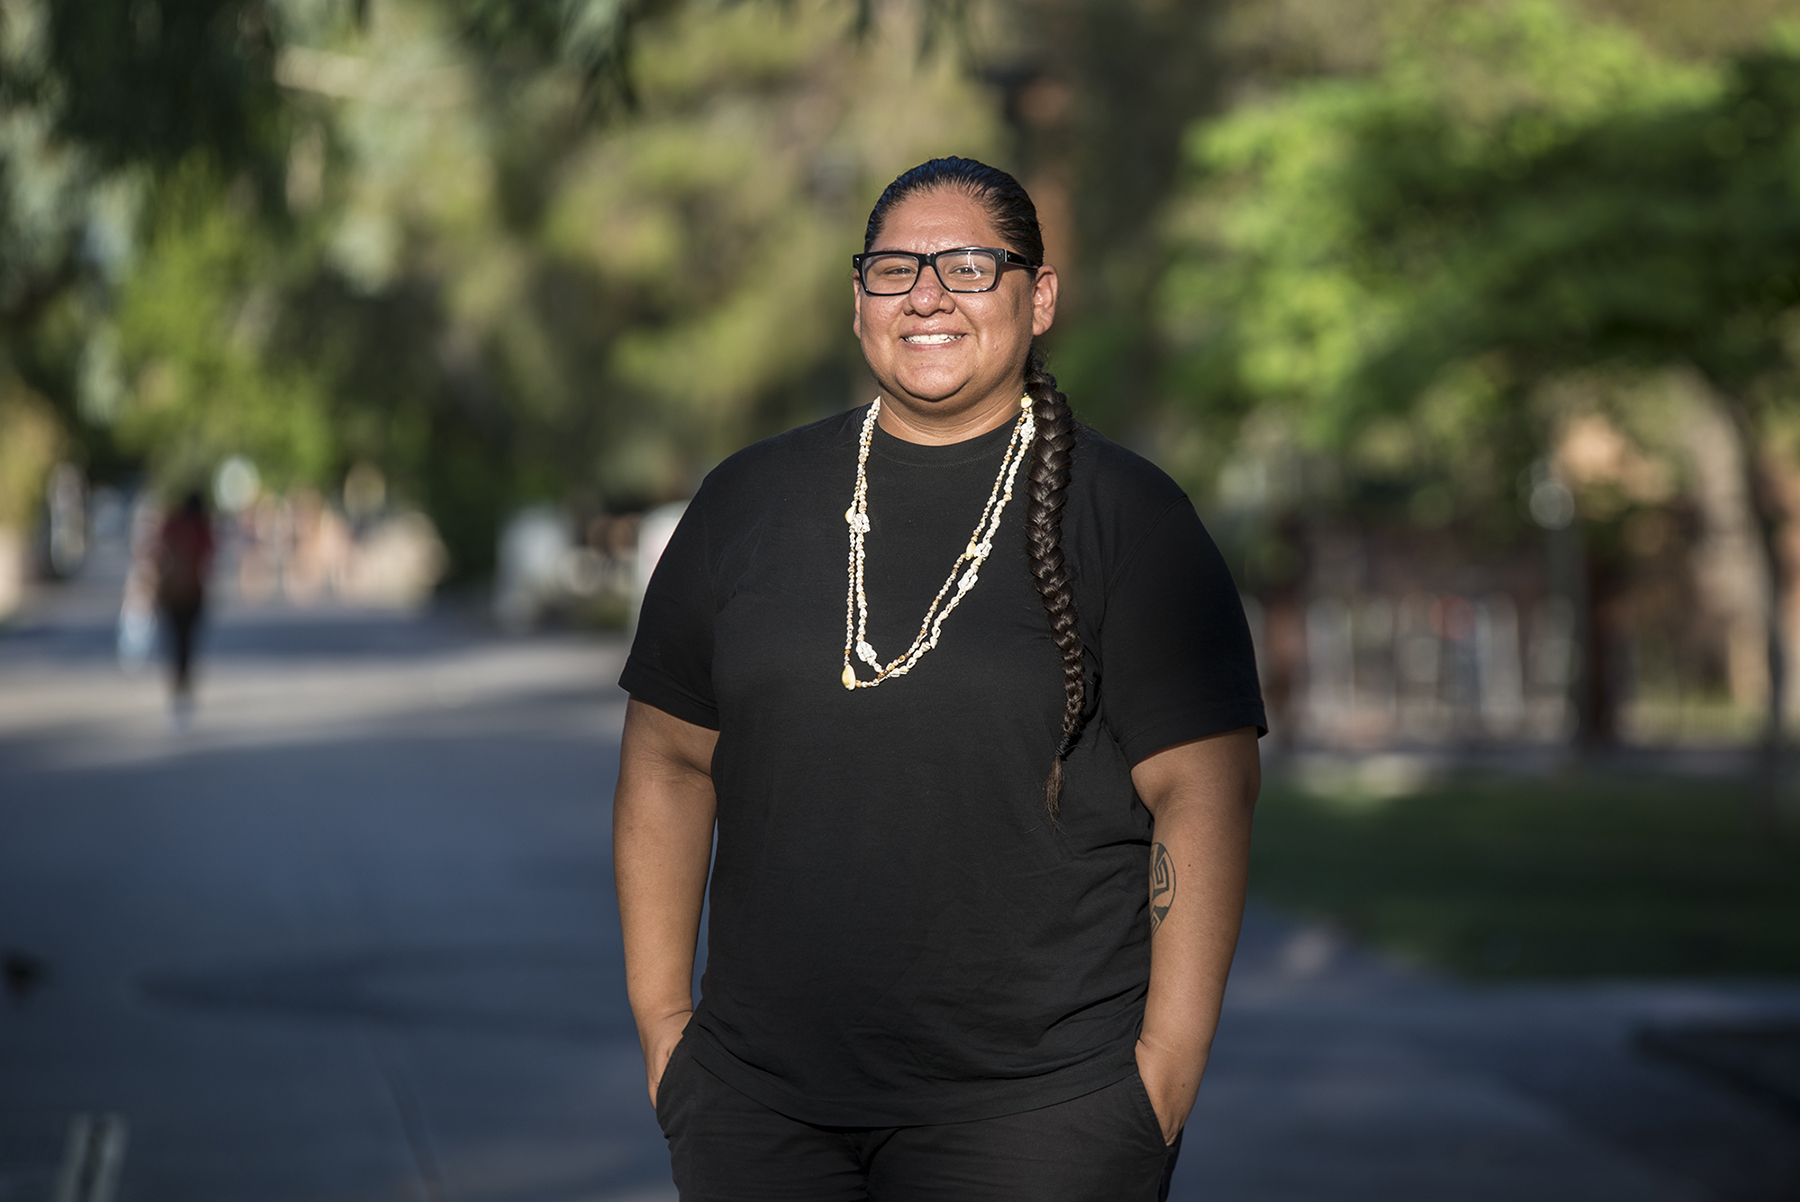 Mikah Carlos studies at Arizona State University and lives in the Salt River Pima-Maricopa Indian Community. She said a poll worker refused to let her use her tribal ID to vote in a recent election in Arizona. (Roman Knertser/News21)